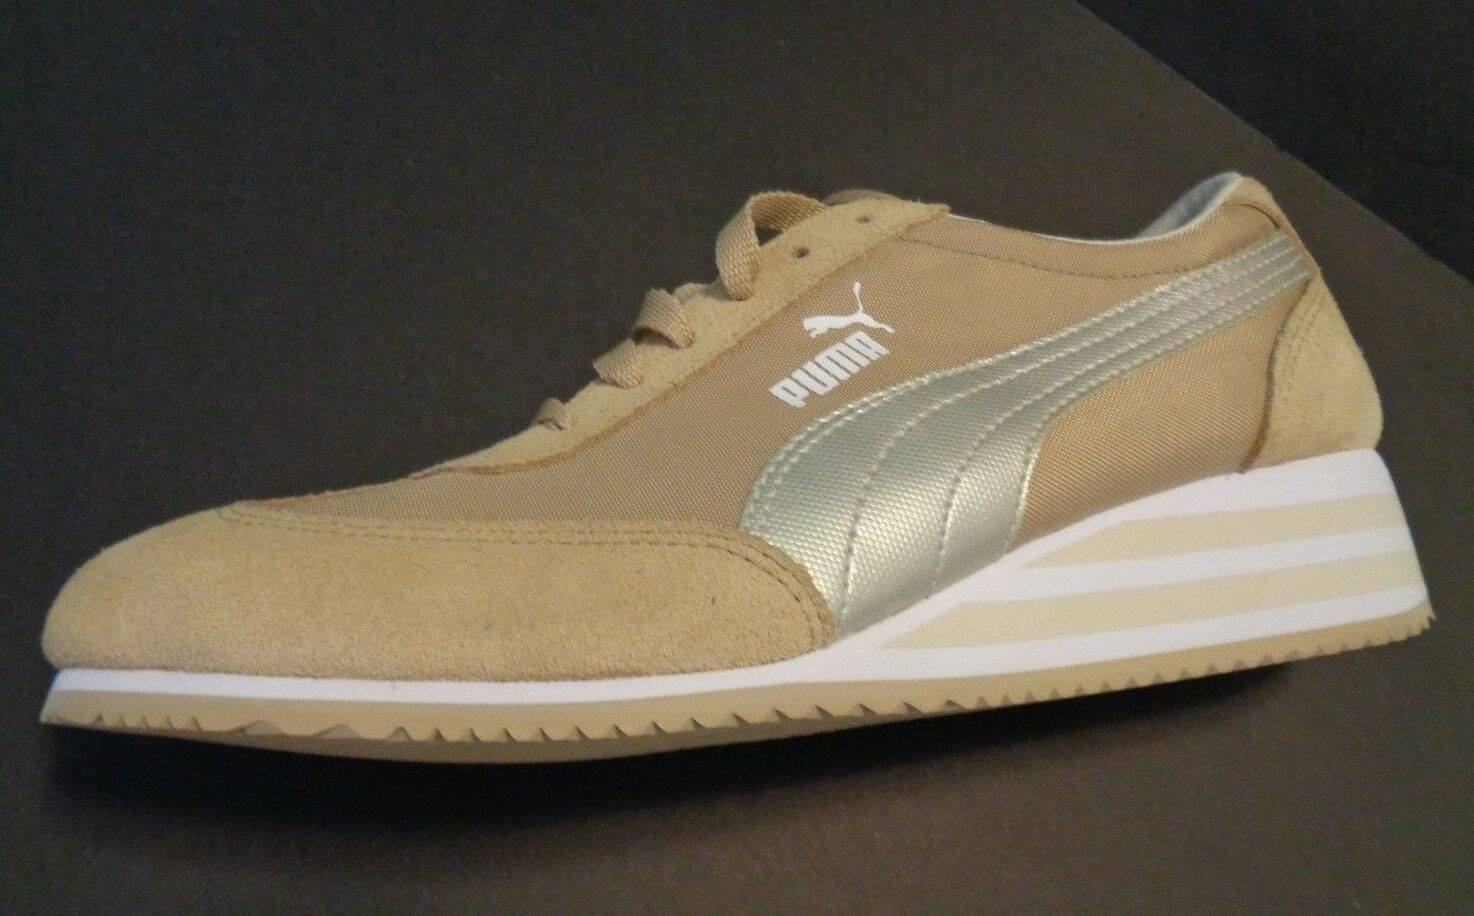 Mint PUMA Ecoortholite  Slant  heel Donna Shoes Size 8 Cream Color